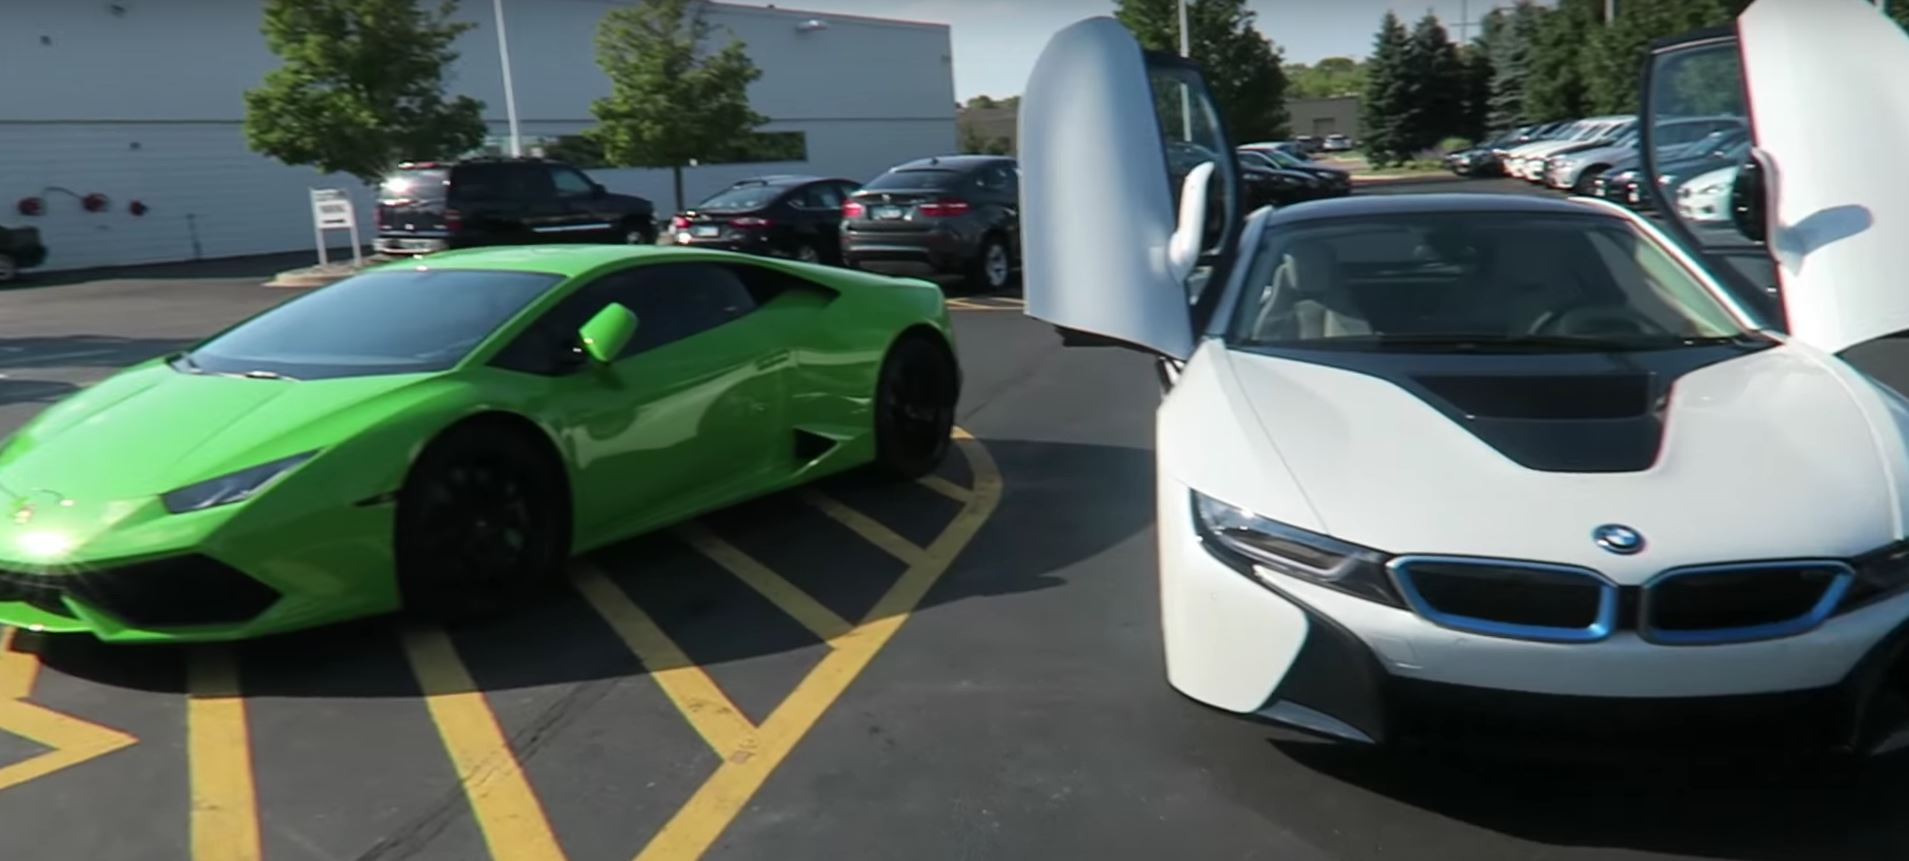 Vehicle virgins buys bmw i8 plans to do series on everyday vehicle virgins buys bmw i8 plans to do series on everyday usability sciox Image collections